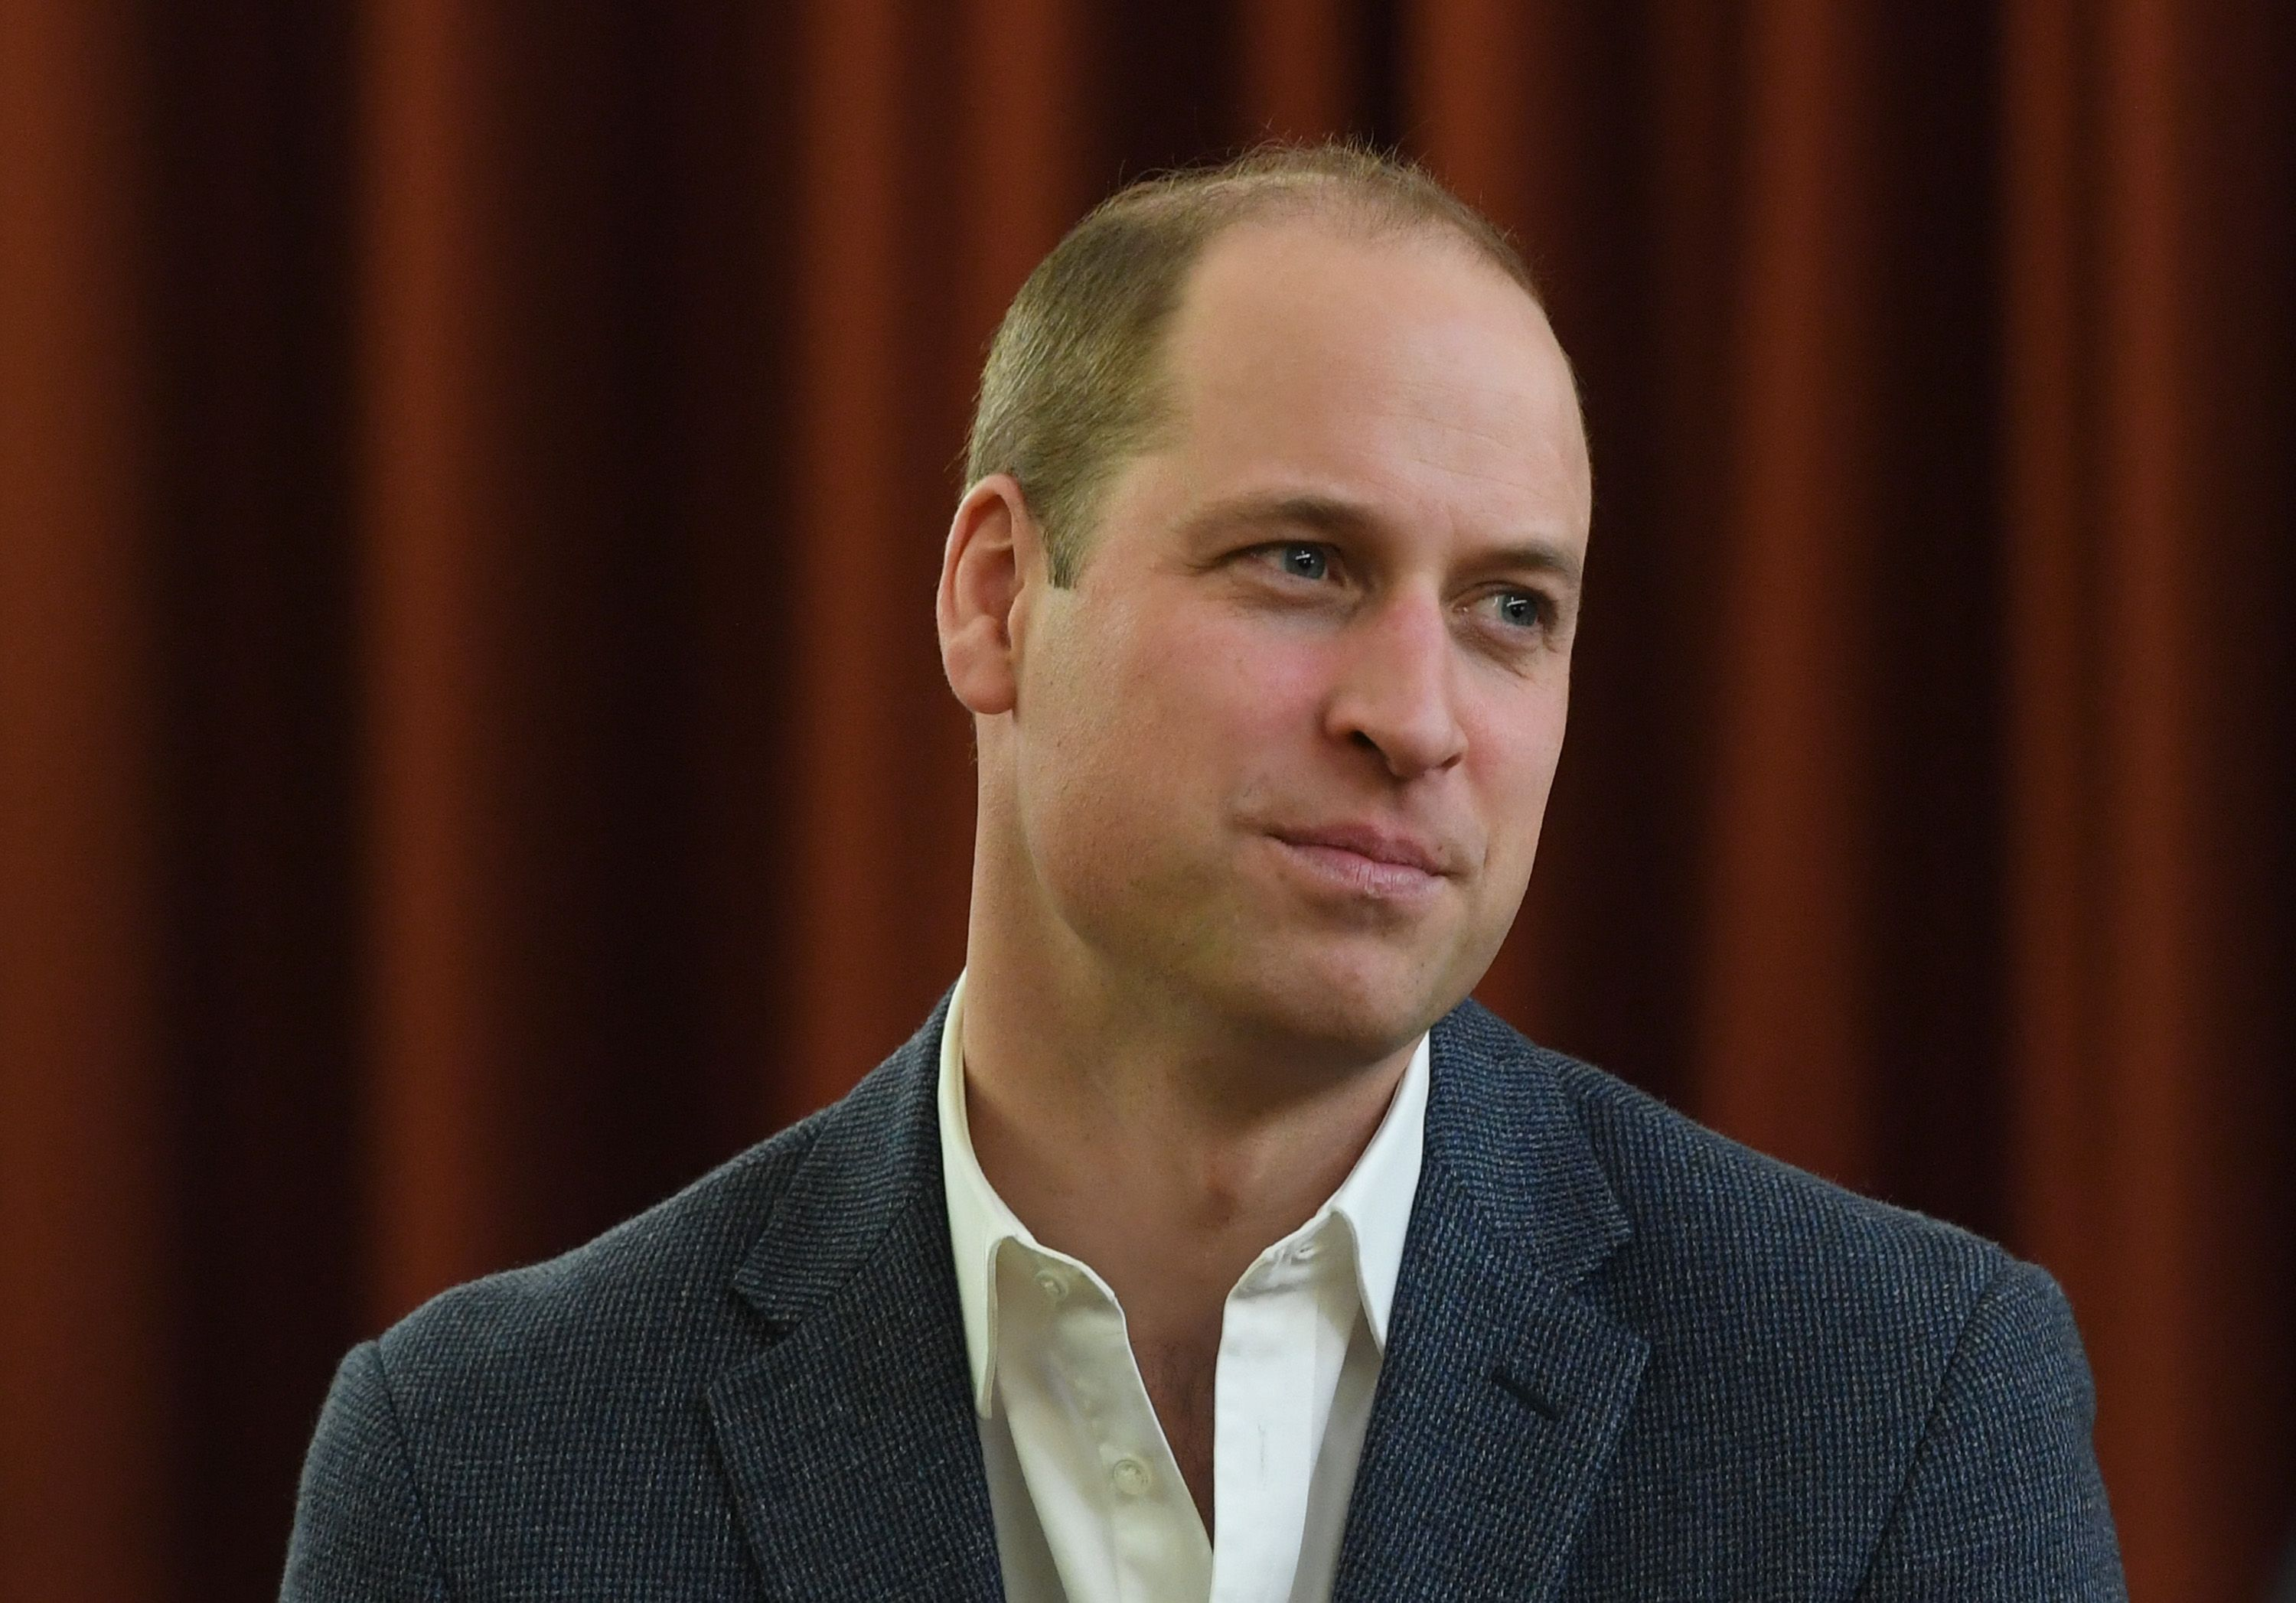 """Prince William Opens Up About Losing His Mom Princess Diana, Saying It Was """"Pain Like No Other"""""""